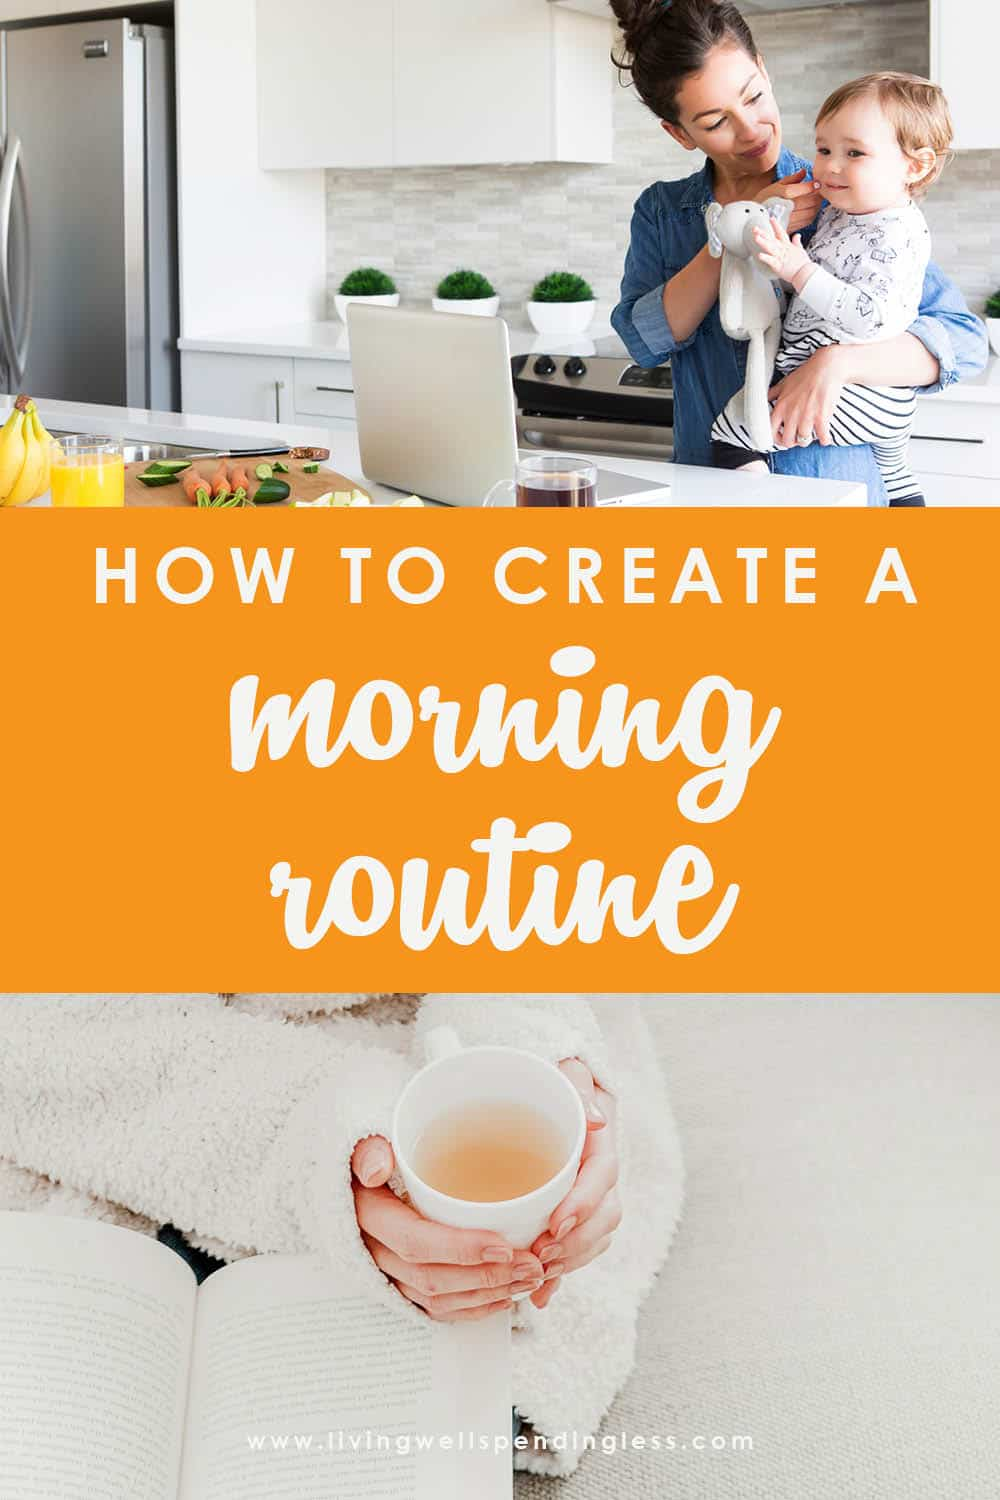 Do you ever wish your mornings ran more smoothly, or better yet, on autopilot? If you ever struggle with getting yourself or your family out the door, you will not want to miss these 6 simple steps for creating a morning routine that truly works. FREE PRINTABLES are included to help you make the most of your morning! #morningroutine #morningrhythm #routines #simplehabits #mornings #routines #timemanagement